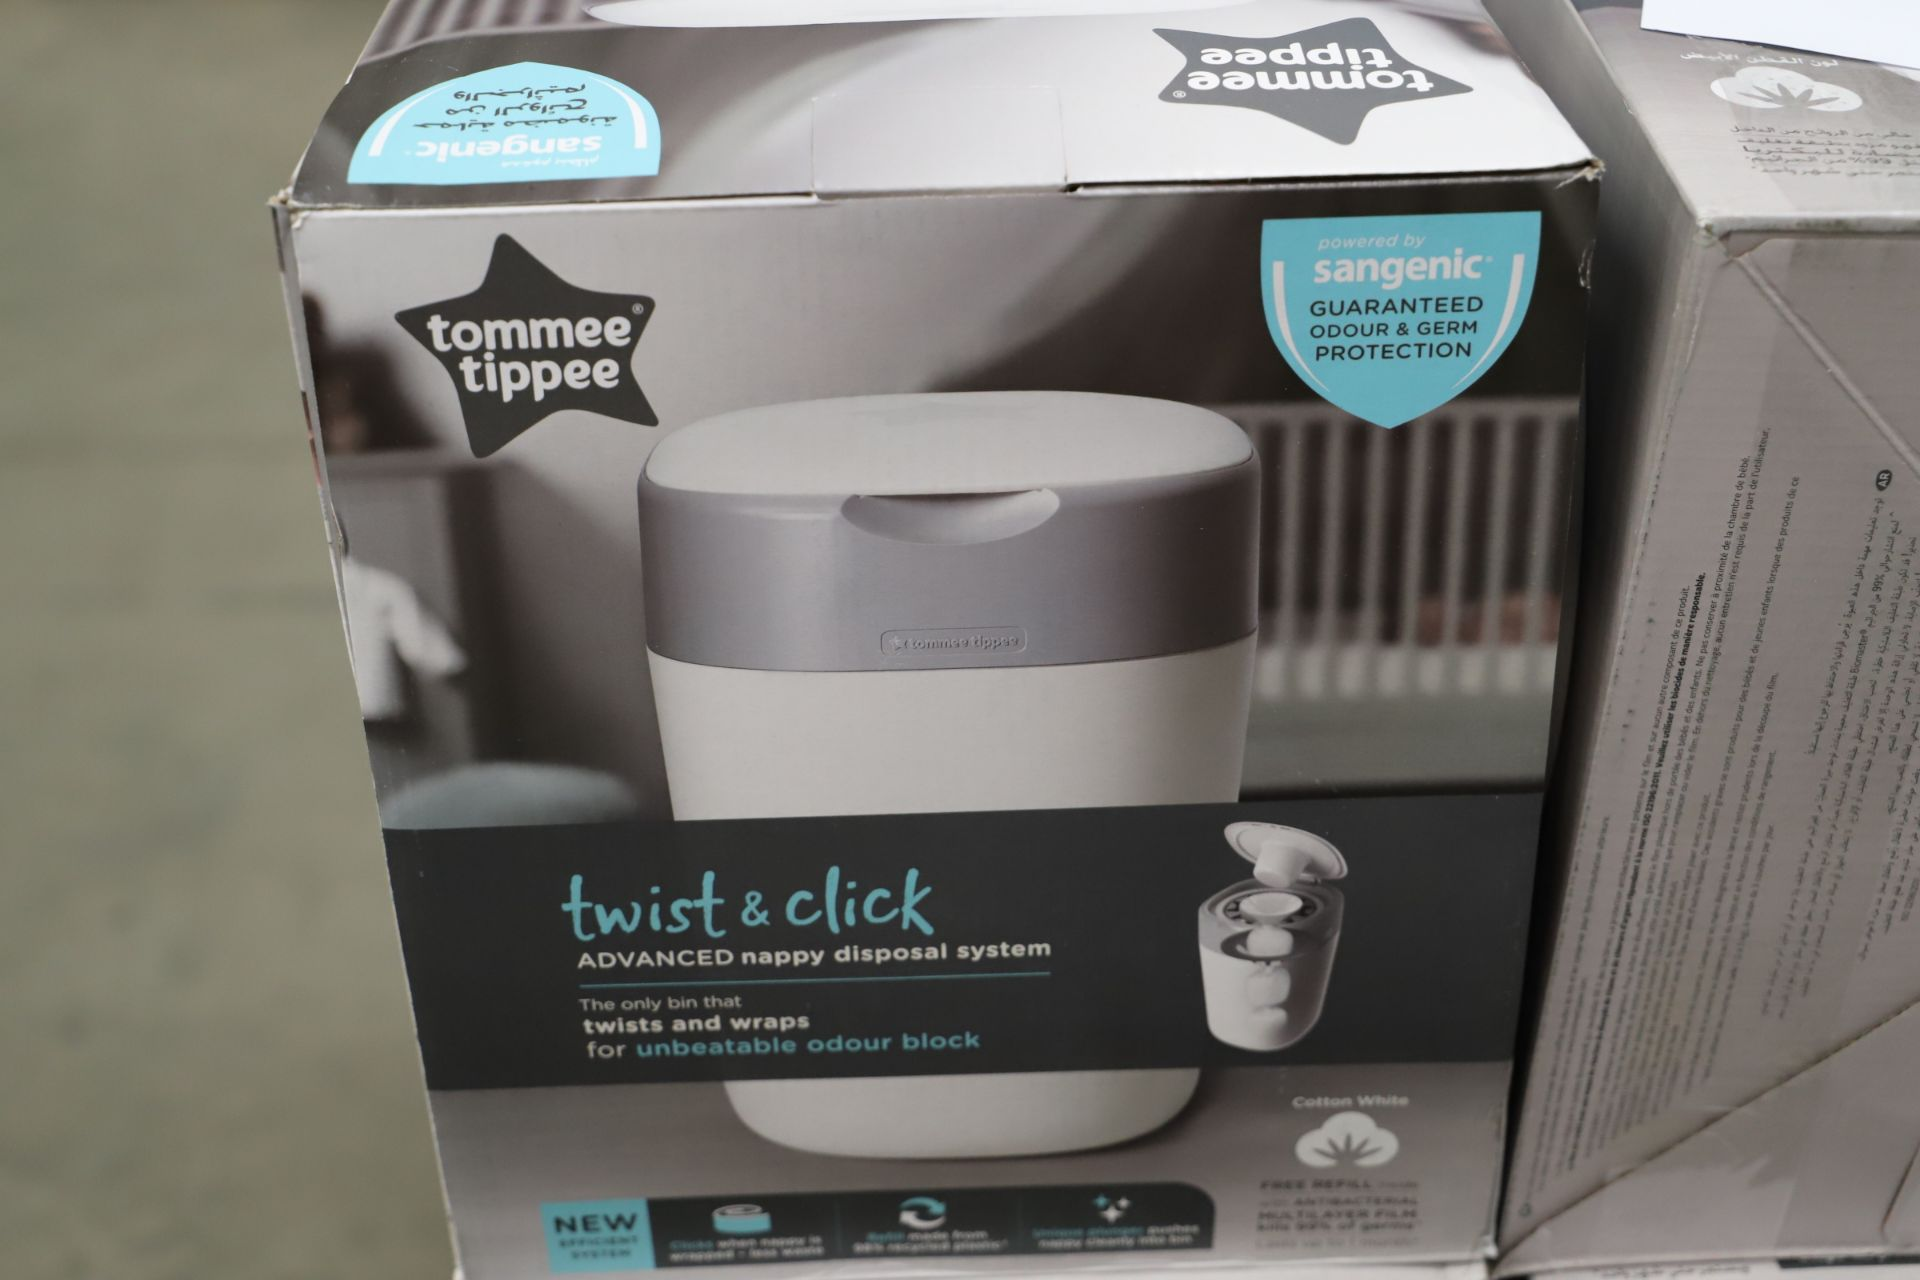 Lot 9 - *No Reserve* Mixed Lot 91 items - Brands include Tommee Tippee & Leapfrog. RRP £1721.00